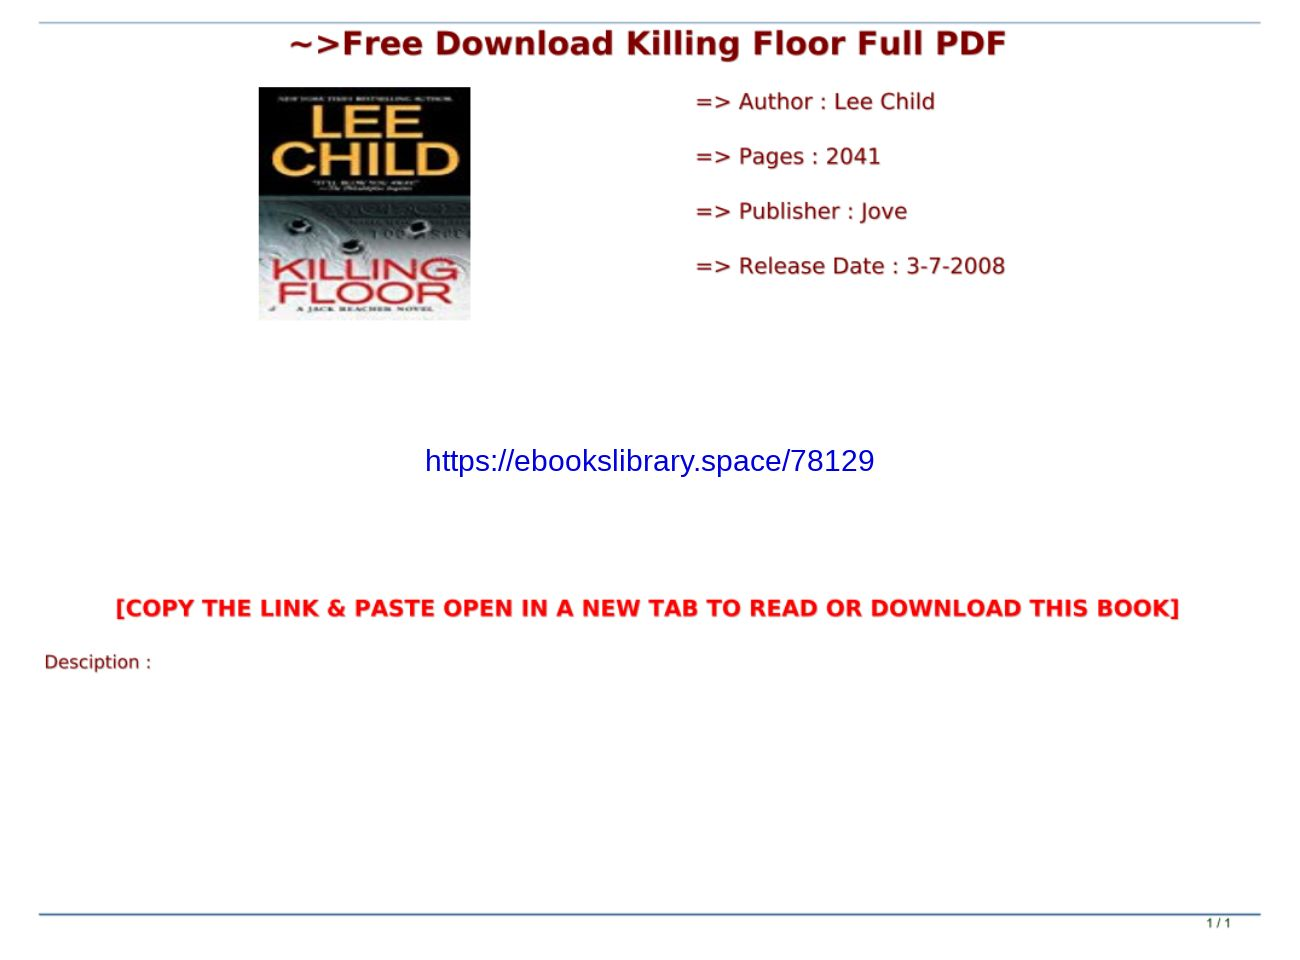 Free Download Killing Floor Full Pdf Text Images Music Video